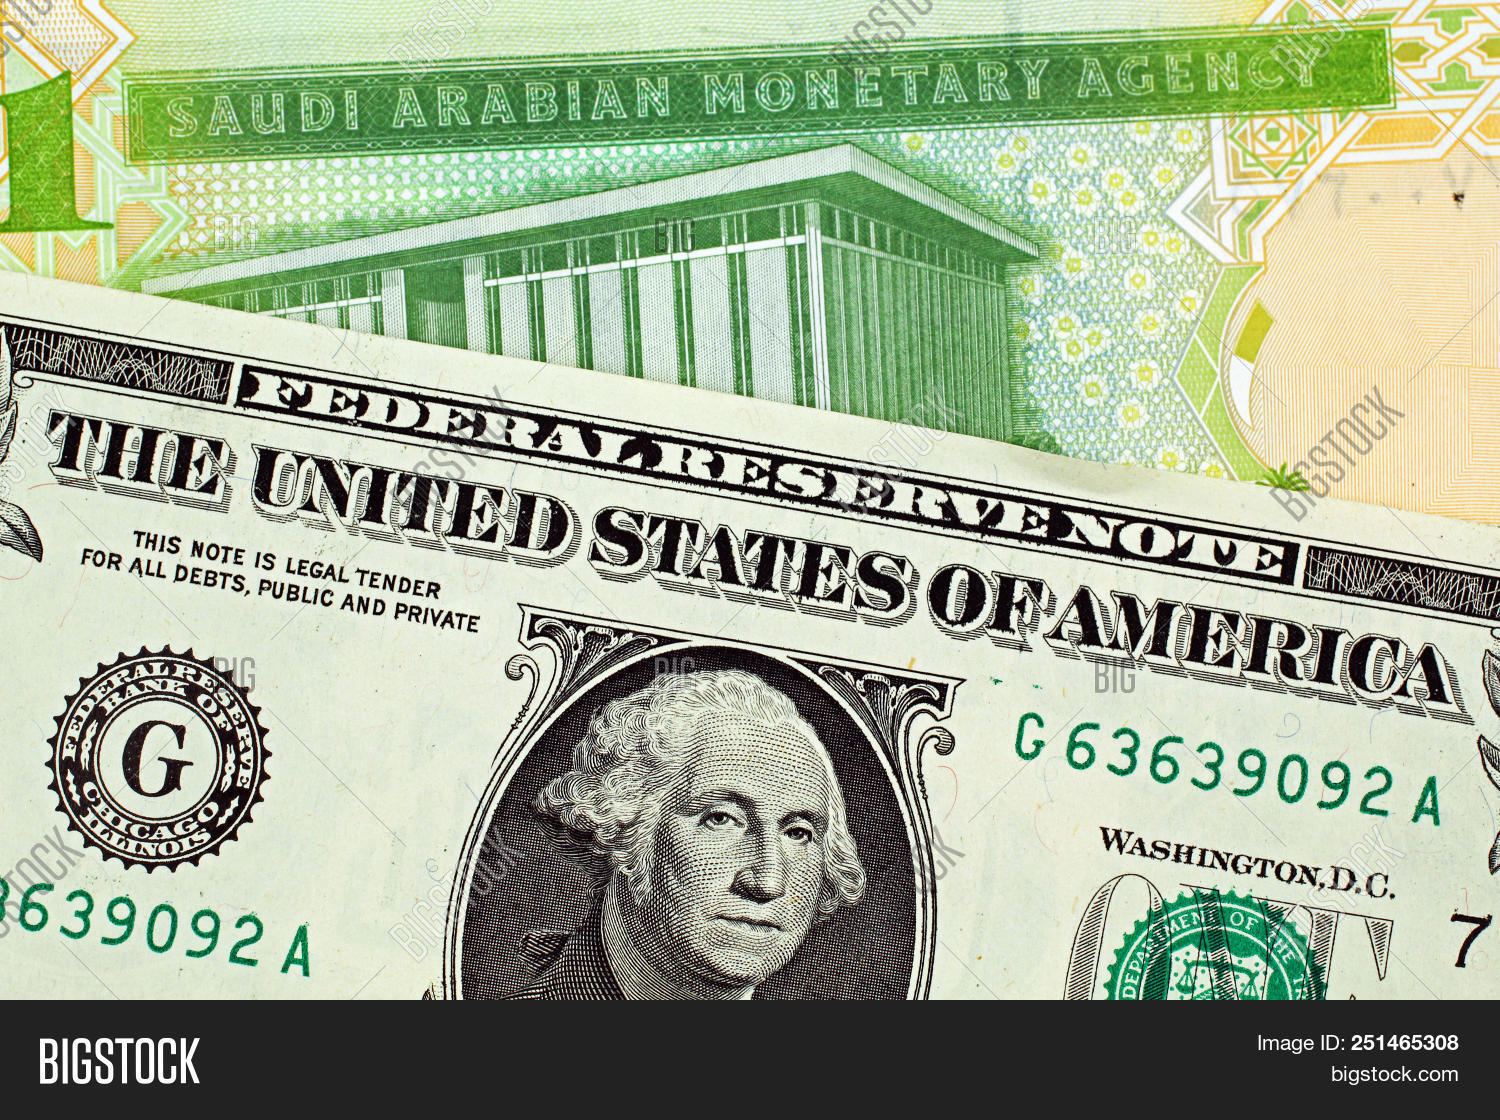 A Close Image Of Green One Saudi Riyal Note With An American Dollar Bill